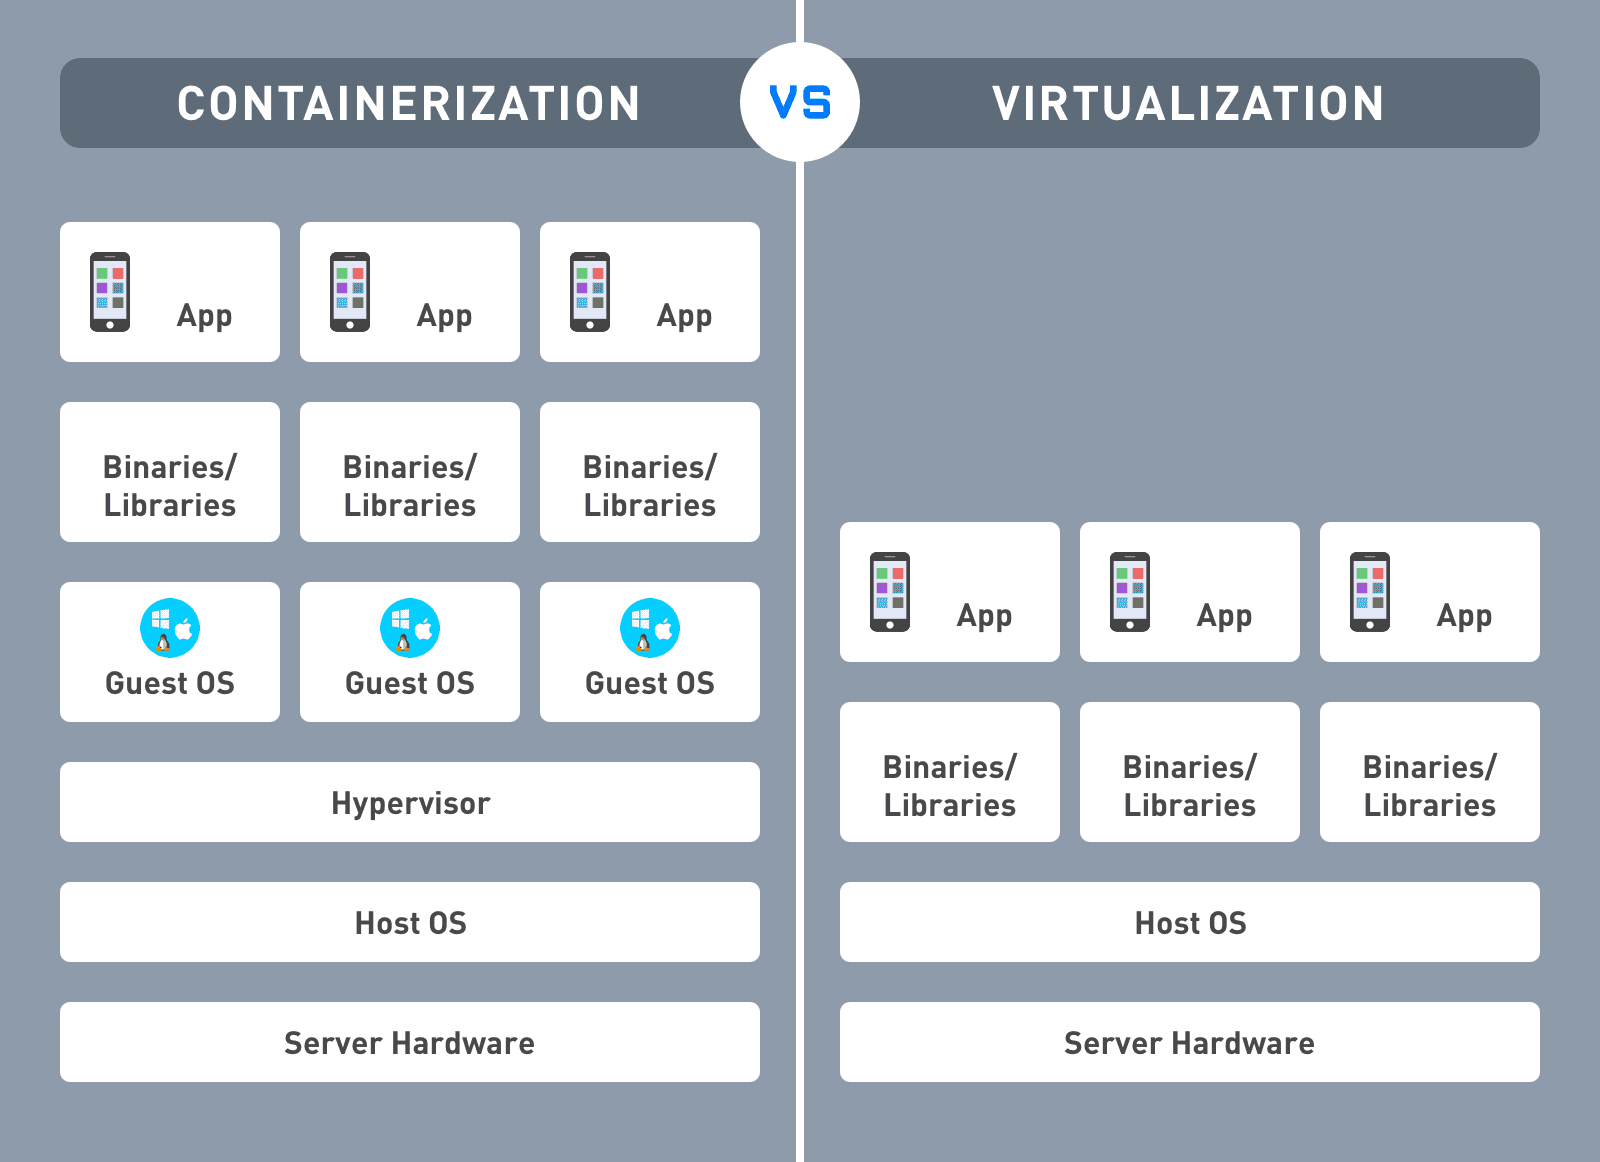 Containerization vs Virtualization